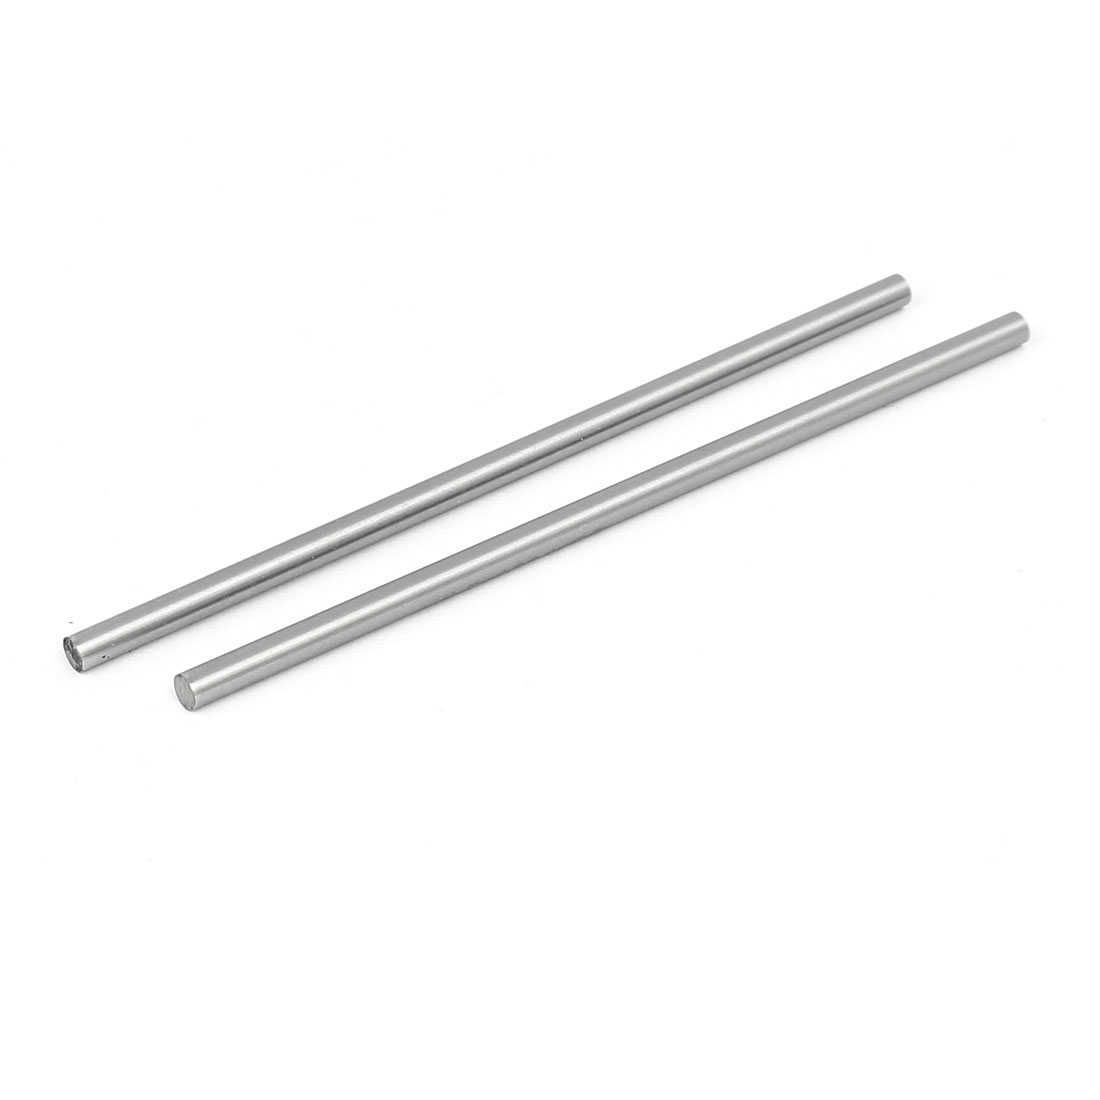 3.5mm Dia 100mm Length HSS Round Shaft Rod Bar Lathe Tools Gray 2pcs